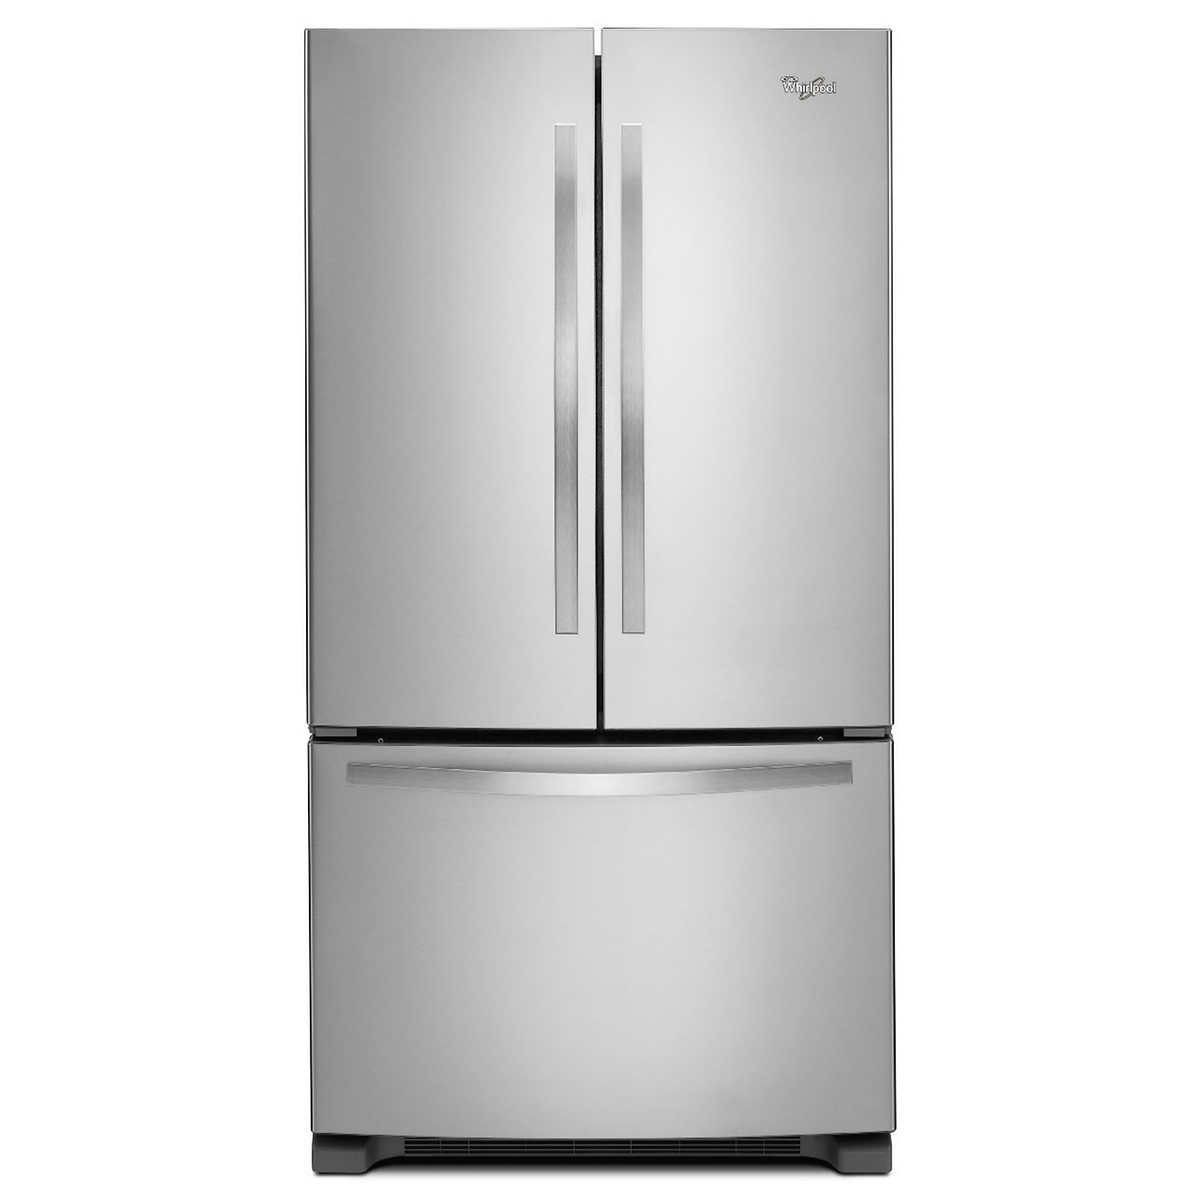 Whirlpool white ice costco - Out Of Stock Whirlpool 25cuft 36 Inch Wide 3 Door French Door Refrigerator In Stainless Steel